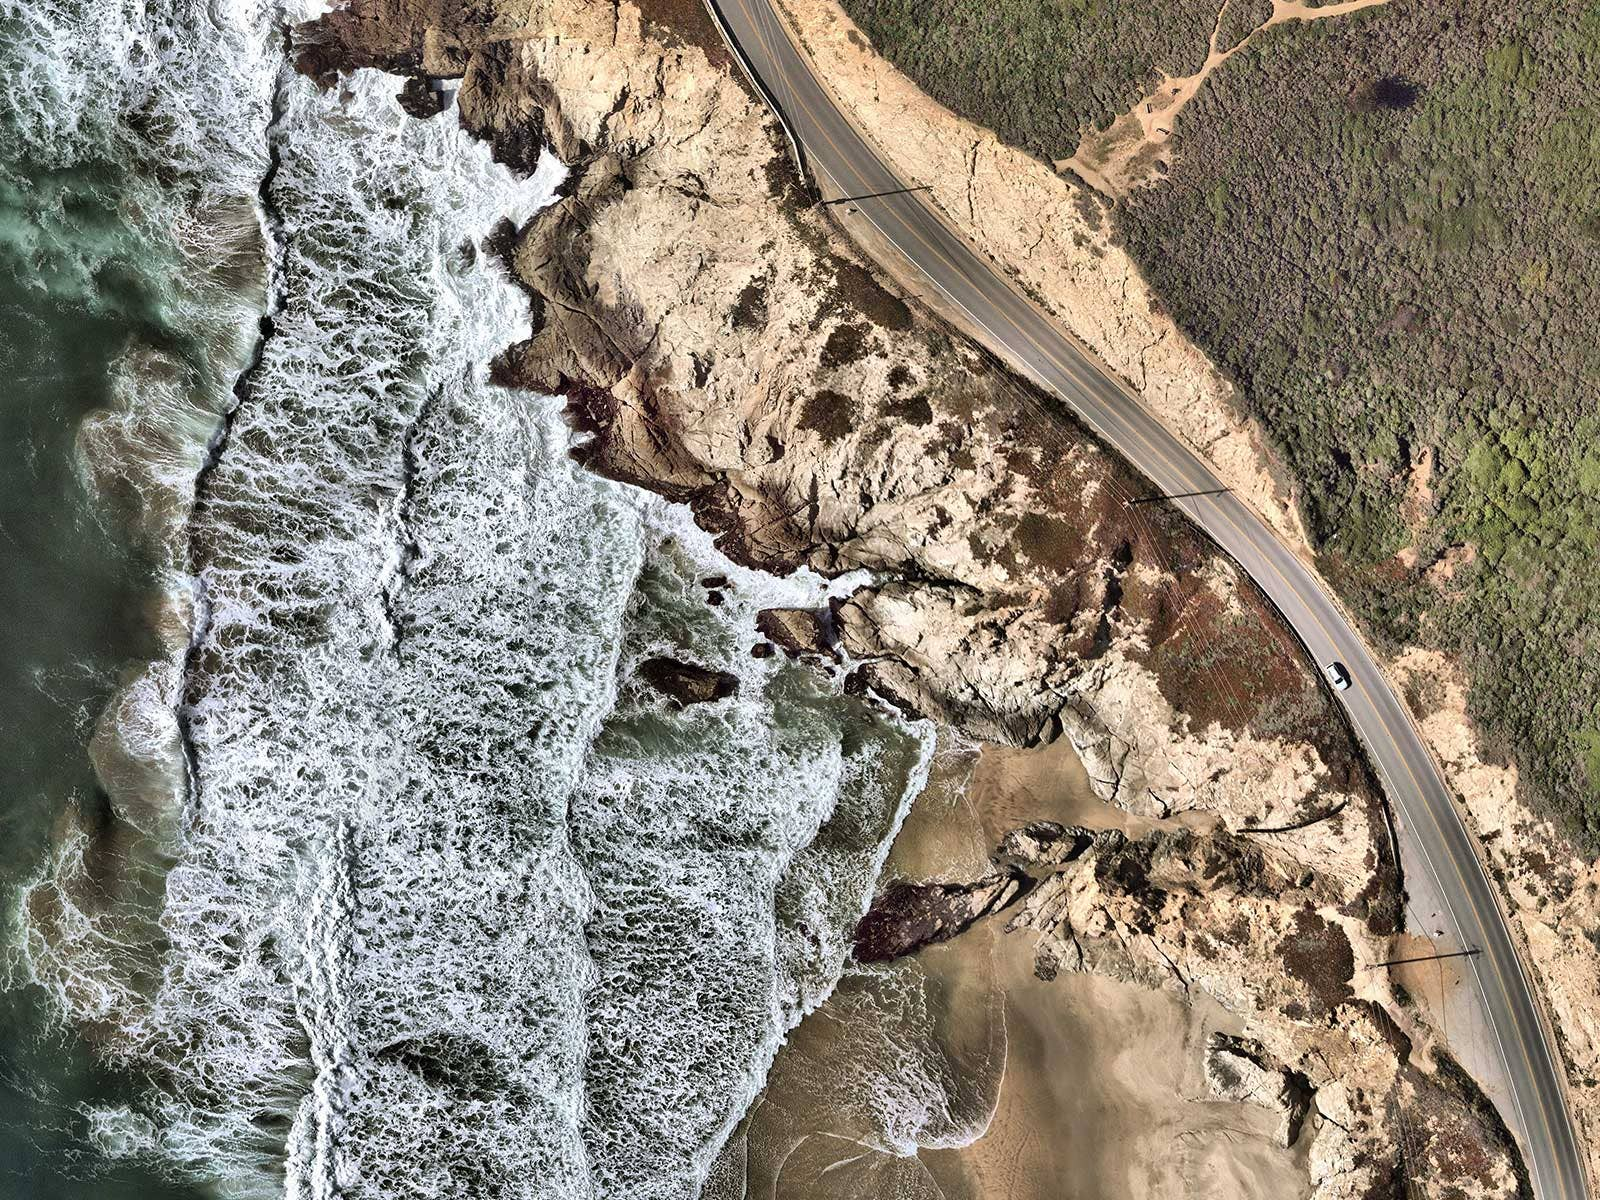 High resolution aerial image of the Cabrillo Highway, California